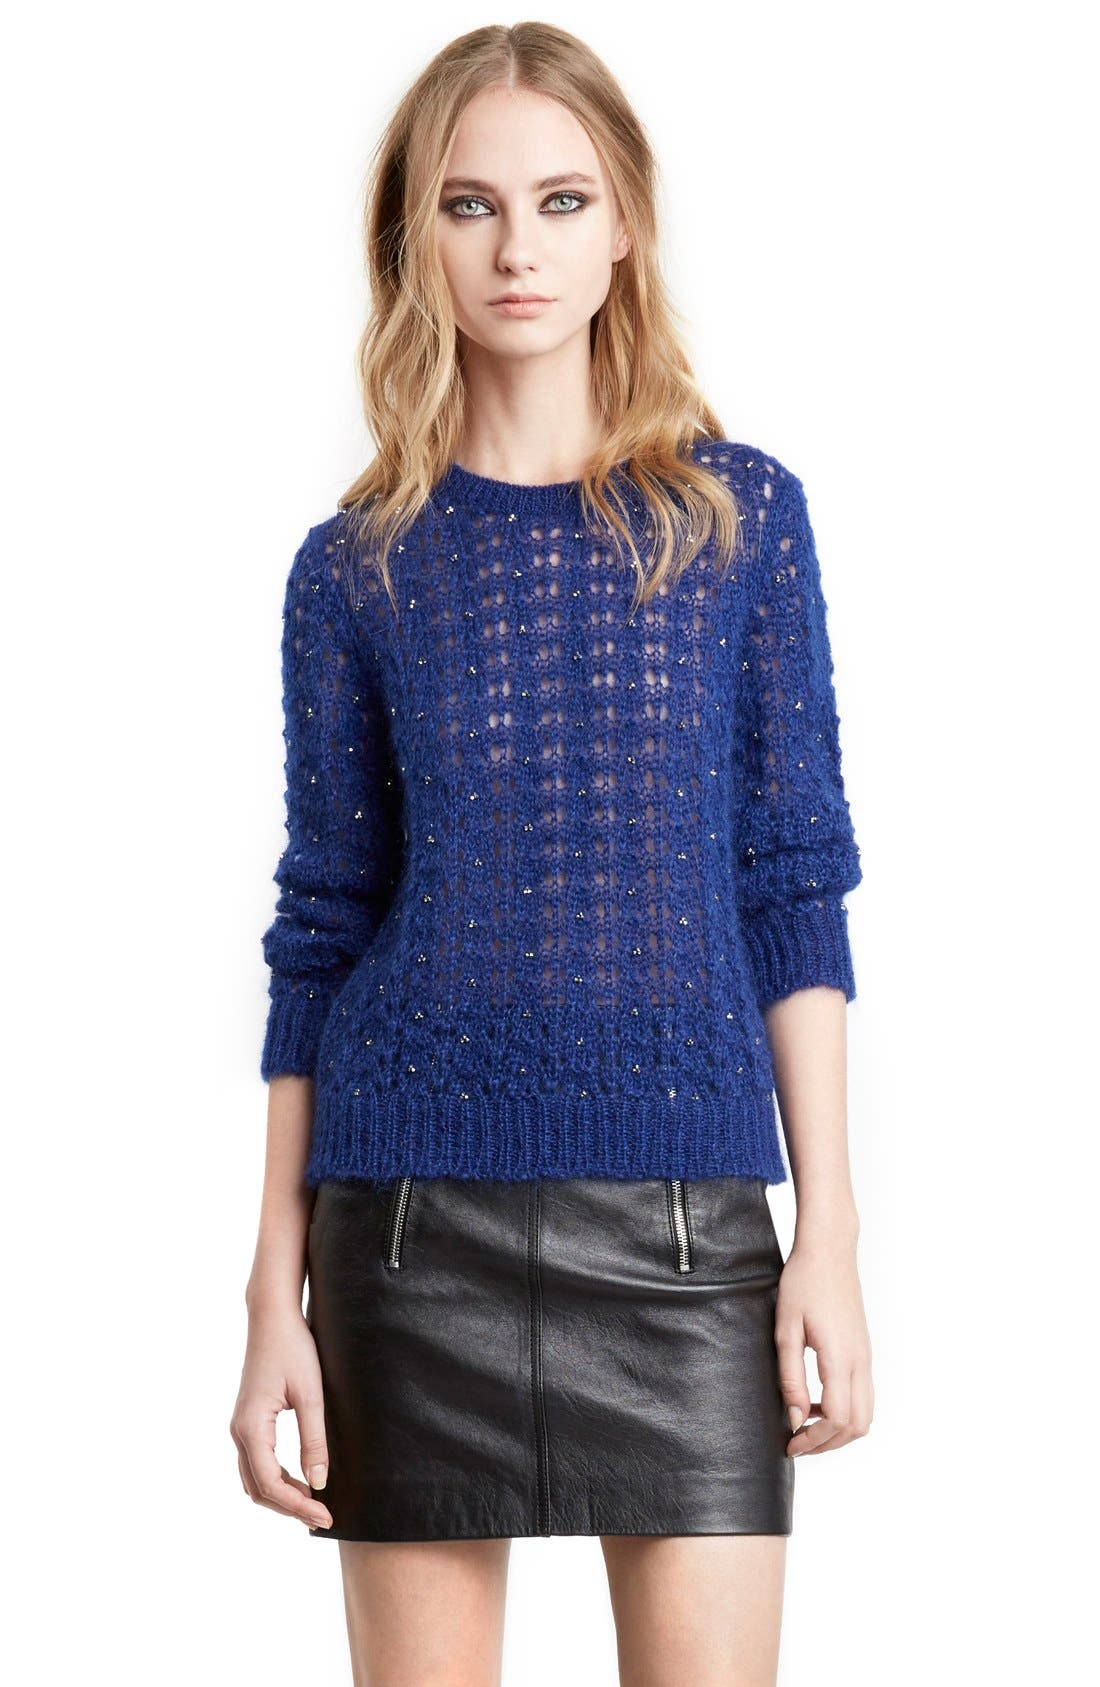 SAINT LAURENT,                             Mohair Sweater,                             Alternate thumbnail 2, color,                             403